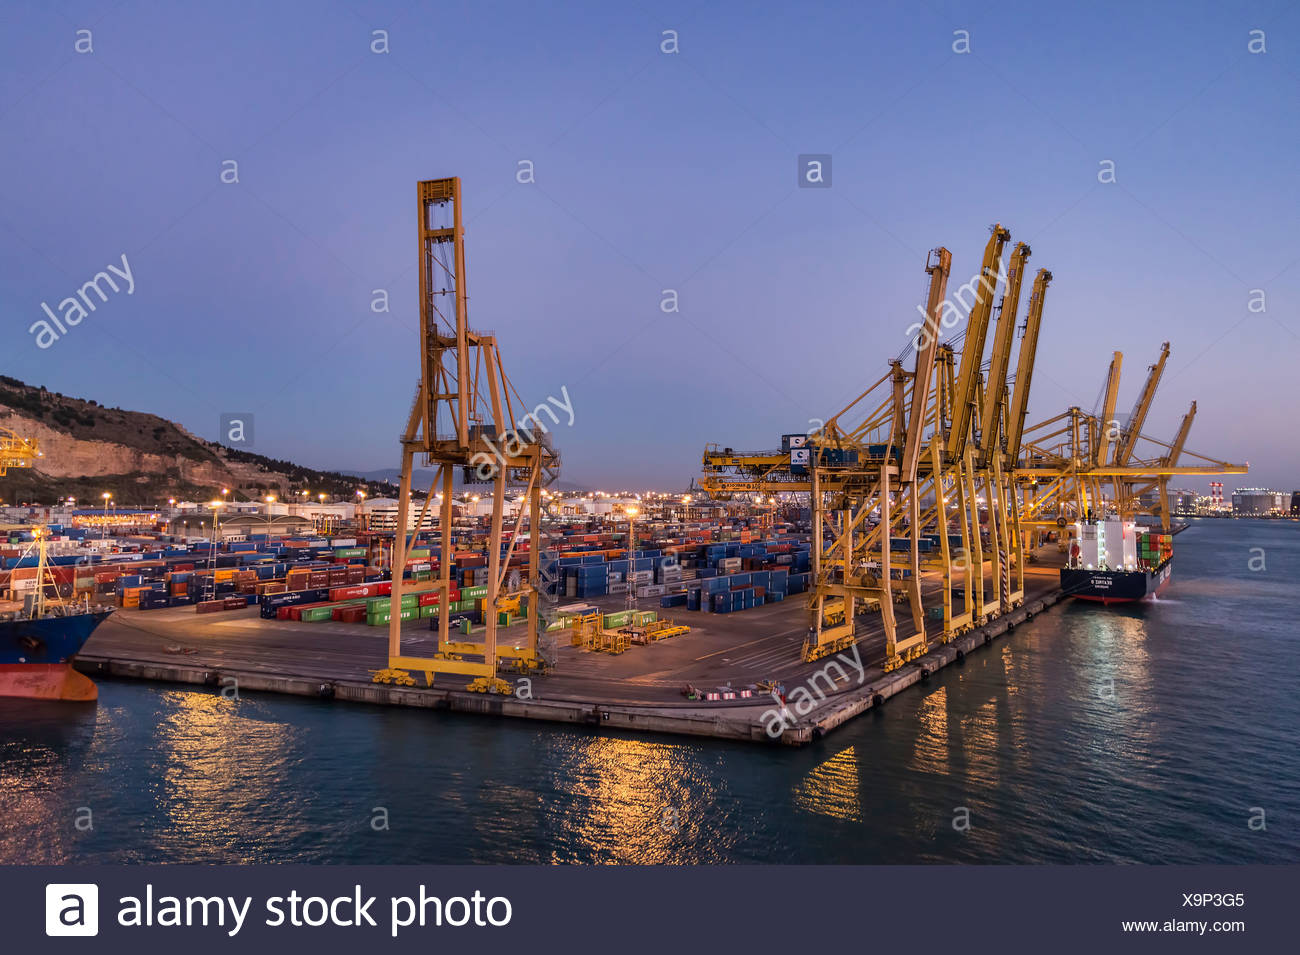 Shipping terminal for export and import cargo containers, Barcelona, Spain. - Stock Image